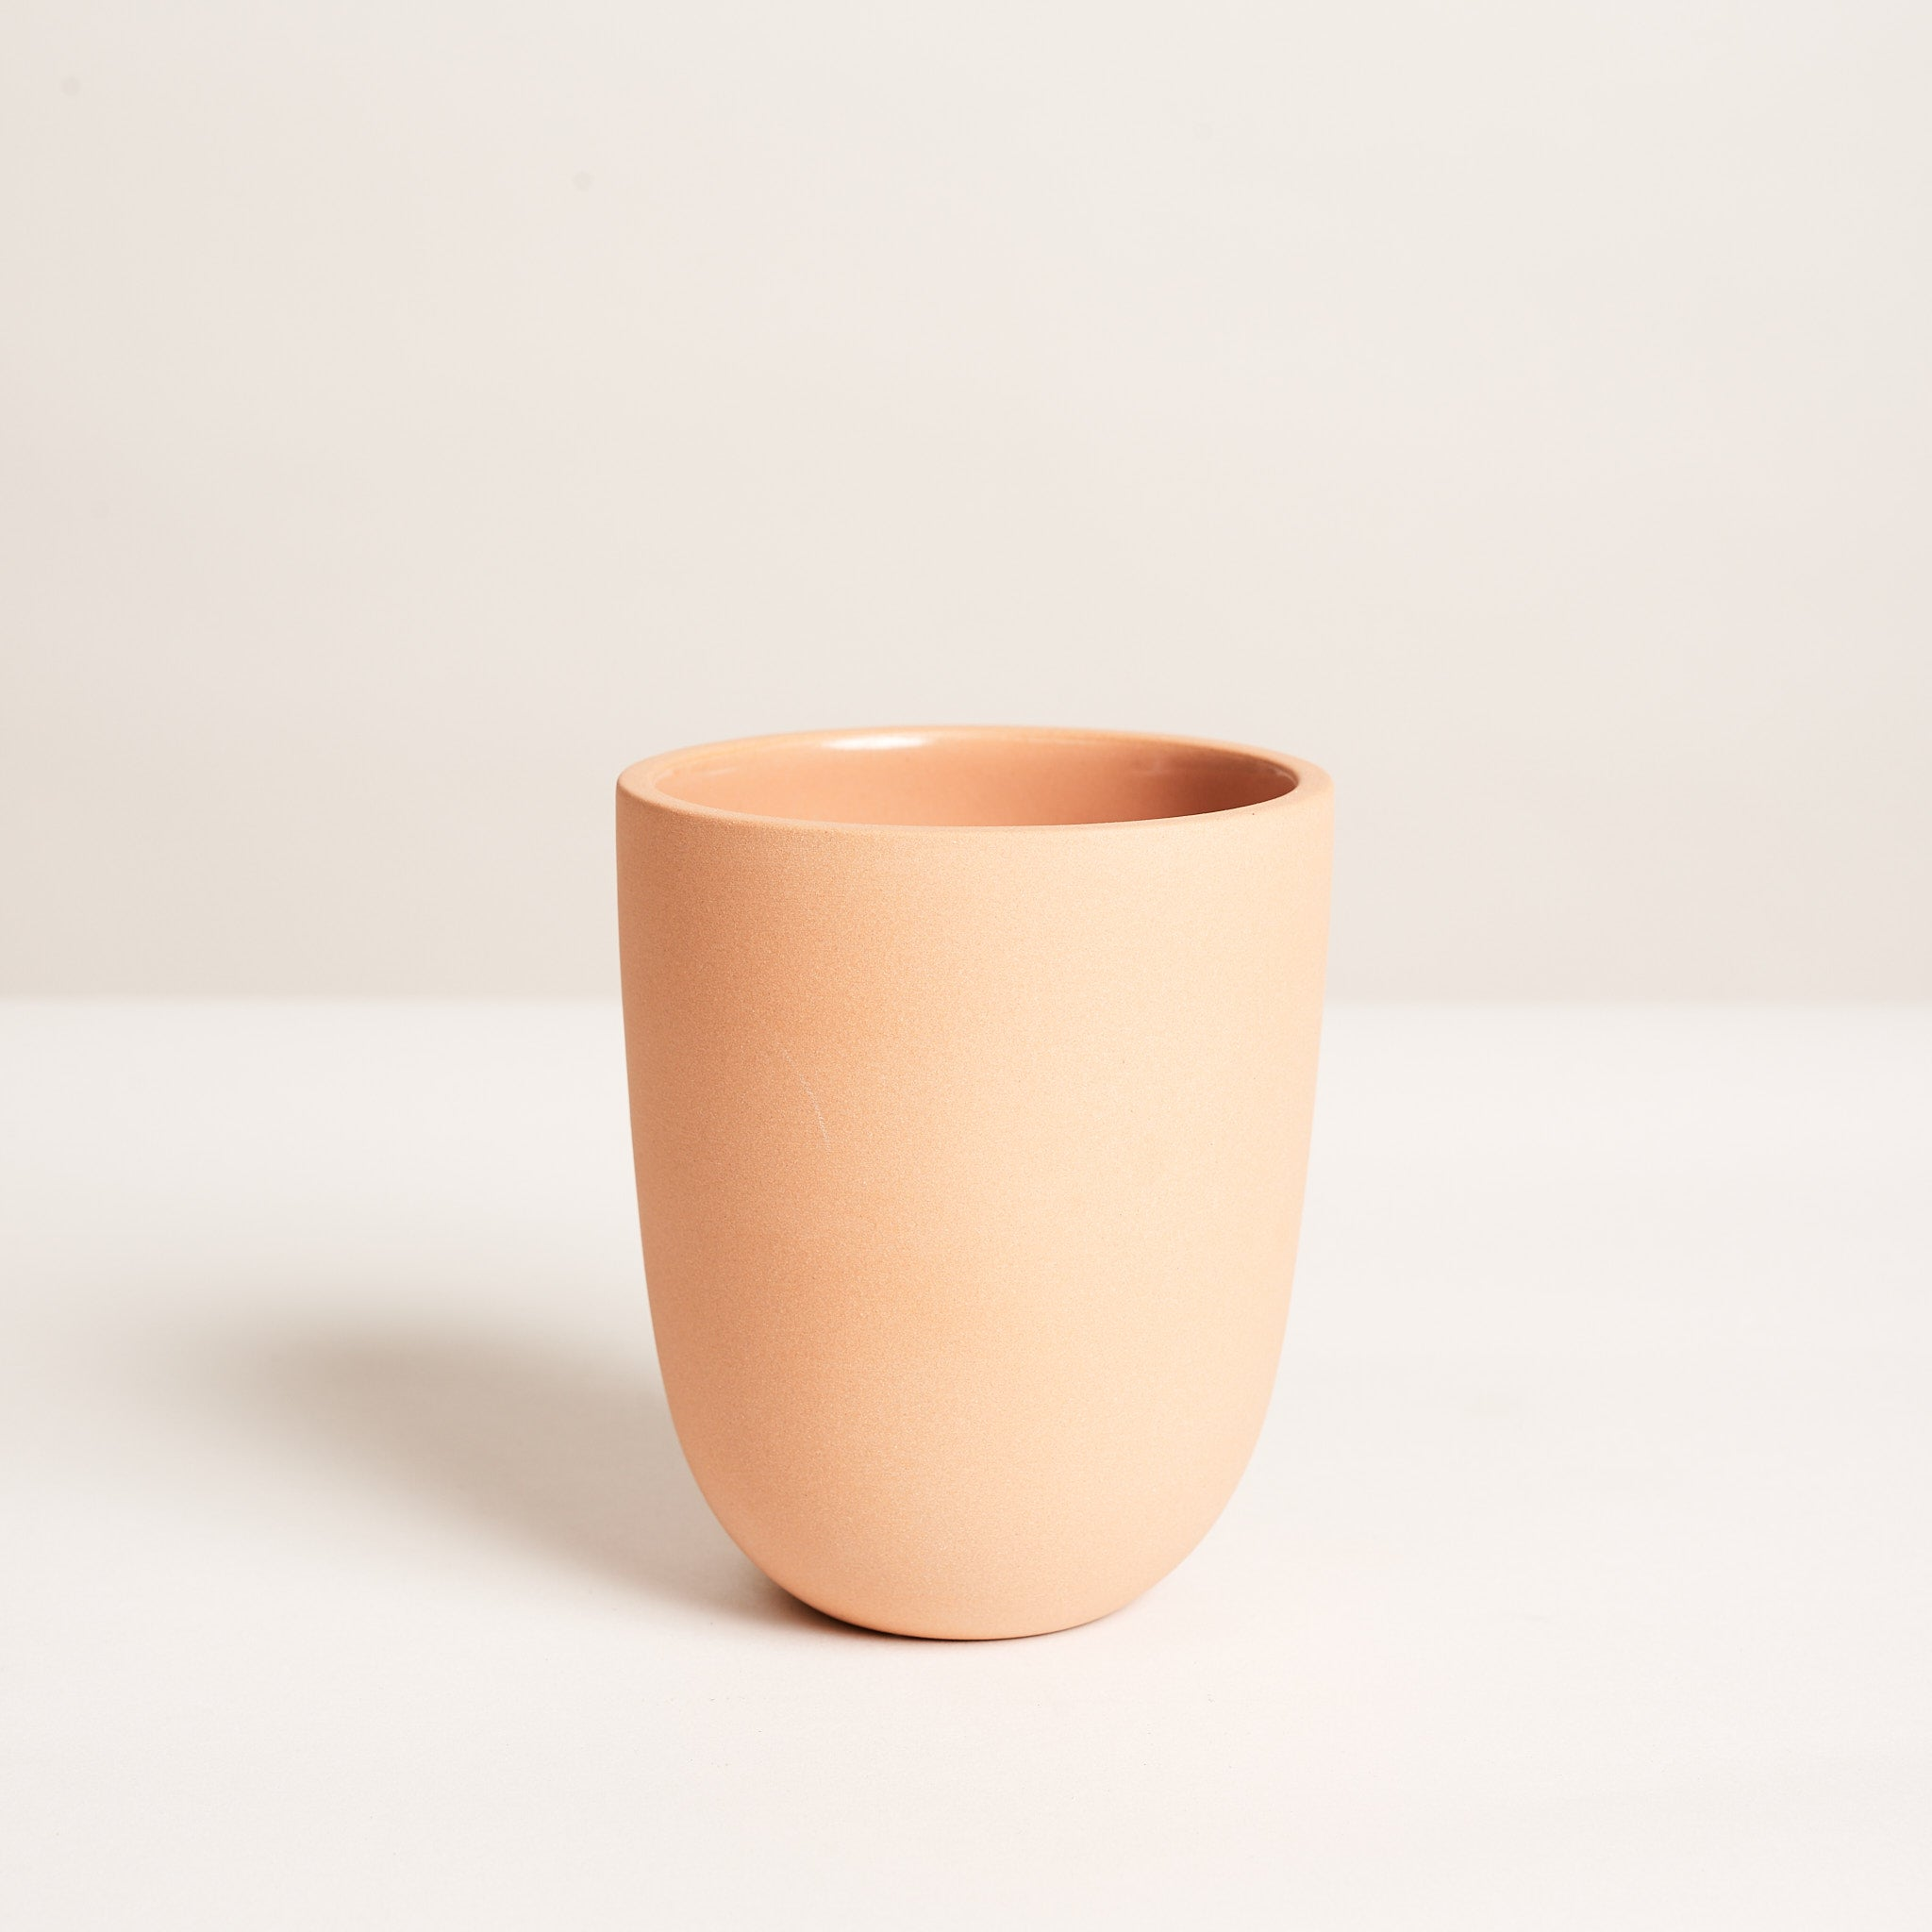 "Small tumbler in terracotta slipcast from a hand-thrown design with a raw, sanded exterior and interior gloss lined glaze for easy cleaning.  4.5"" high and 3.5"" diameter at opening. 14 oz capacity."